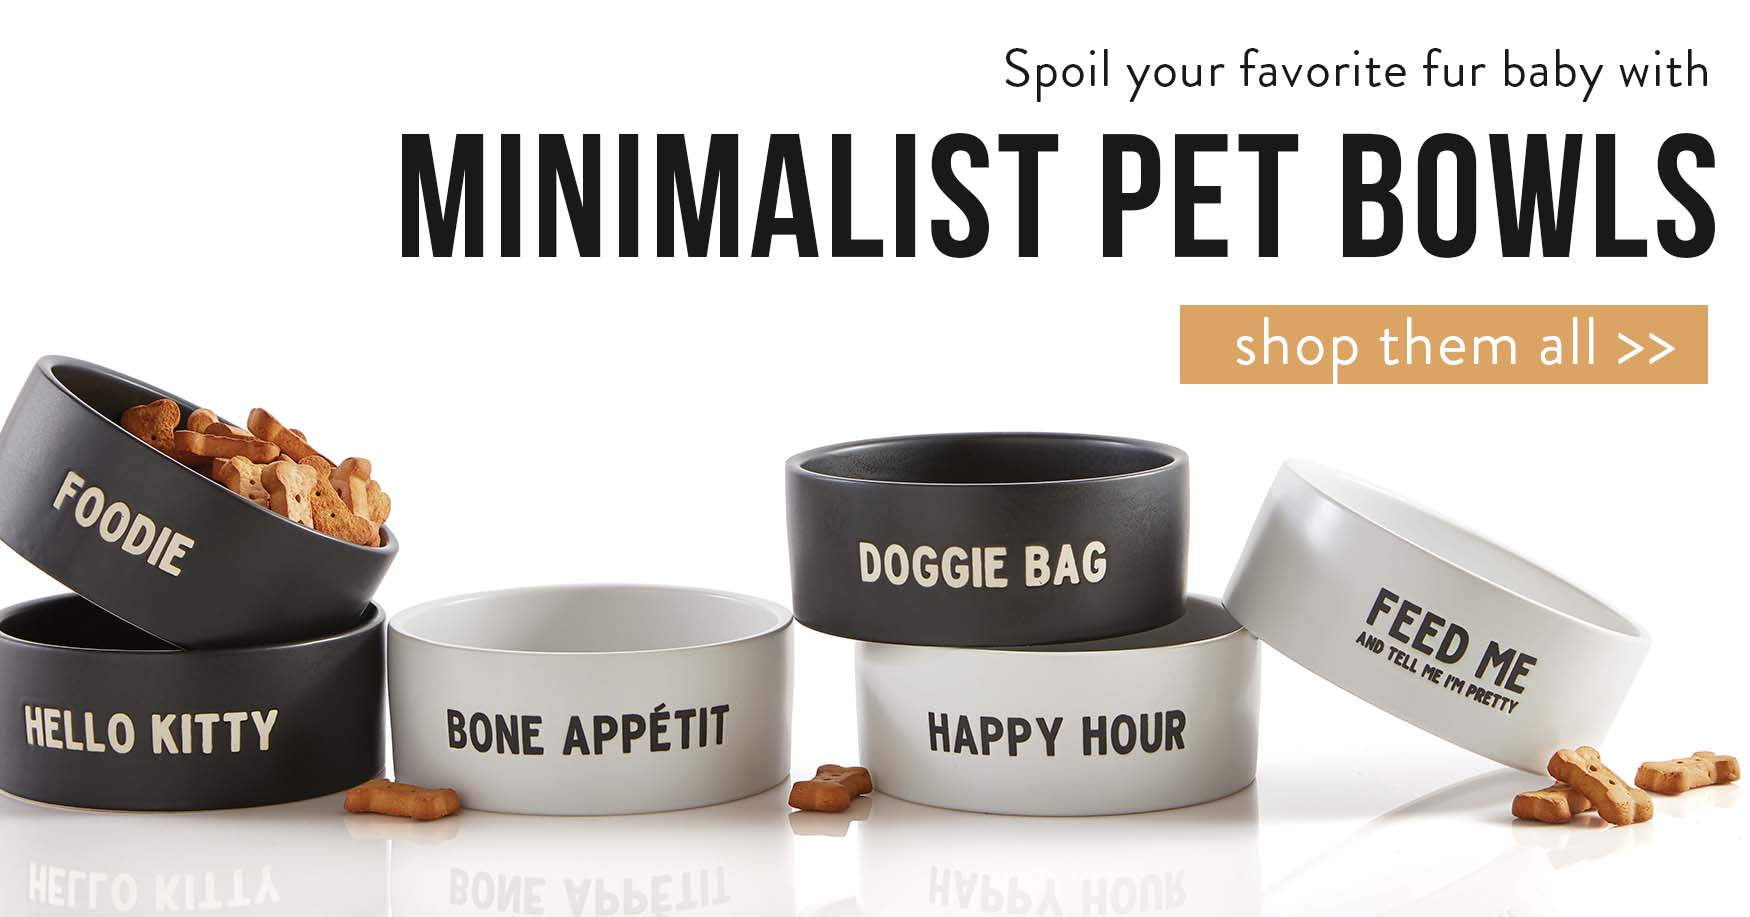 Spoil your favorite fur baby with Minimalist Pet Bowls. Shop them all.